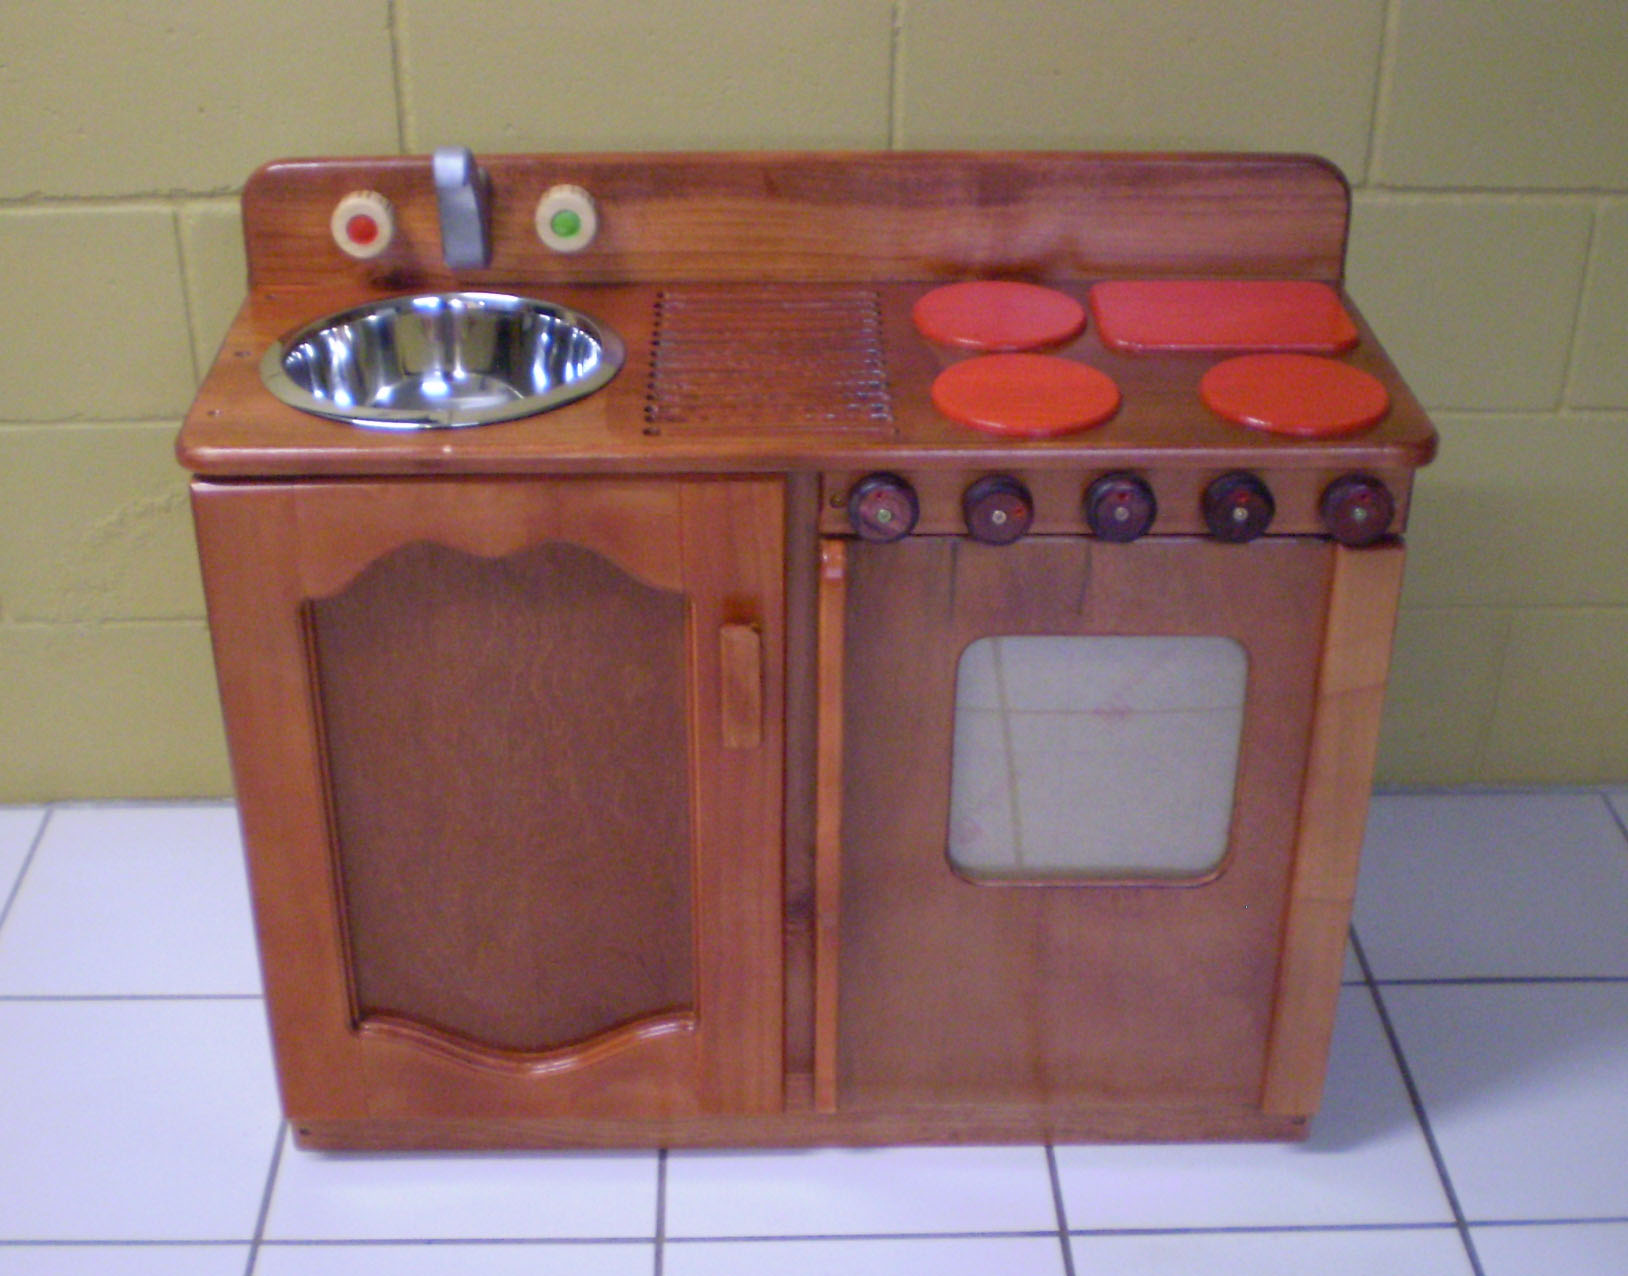 Wooden Sink Stove plan